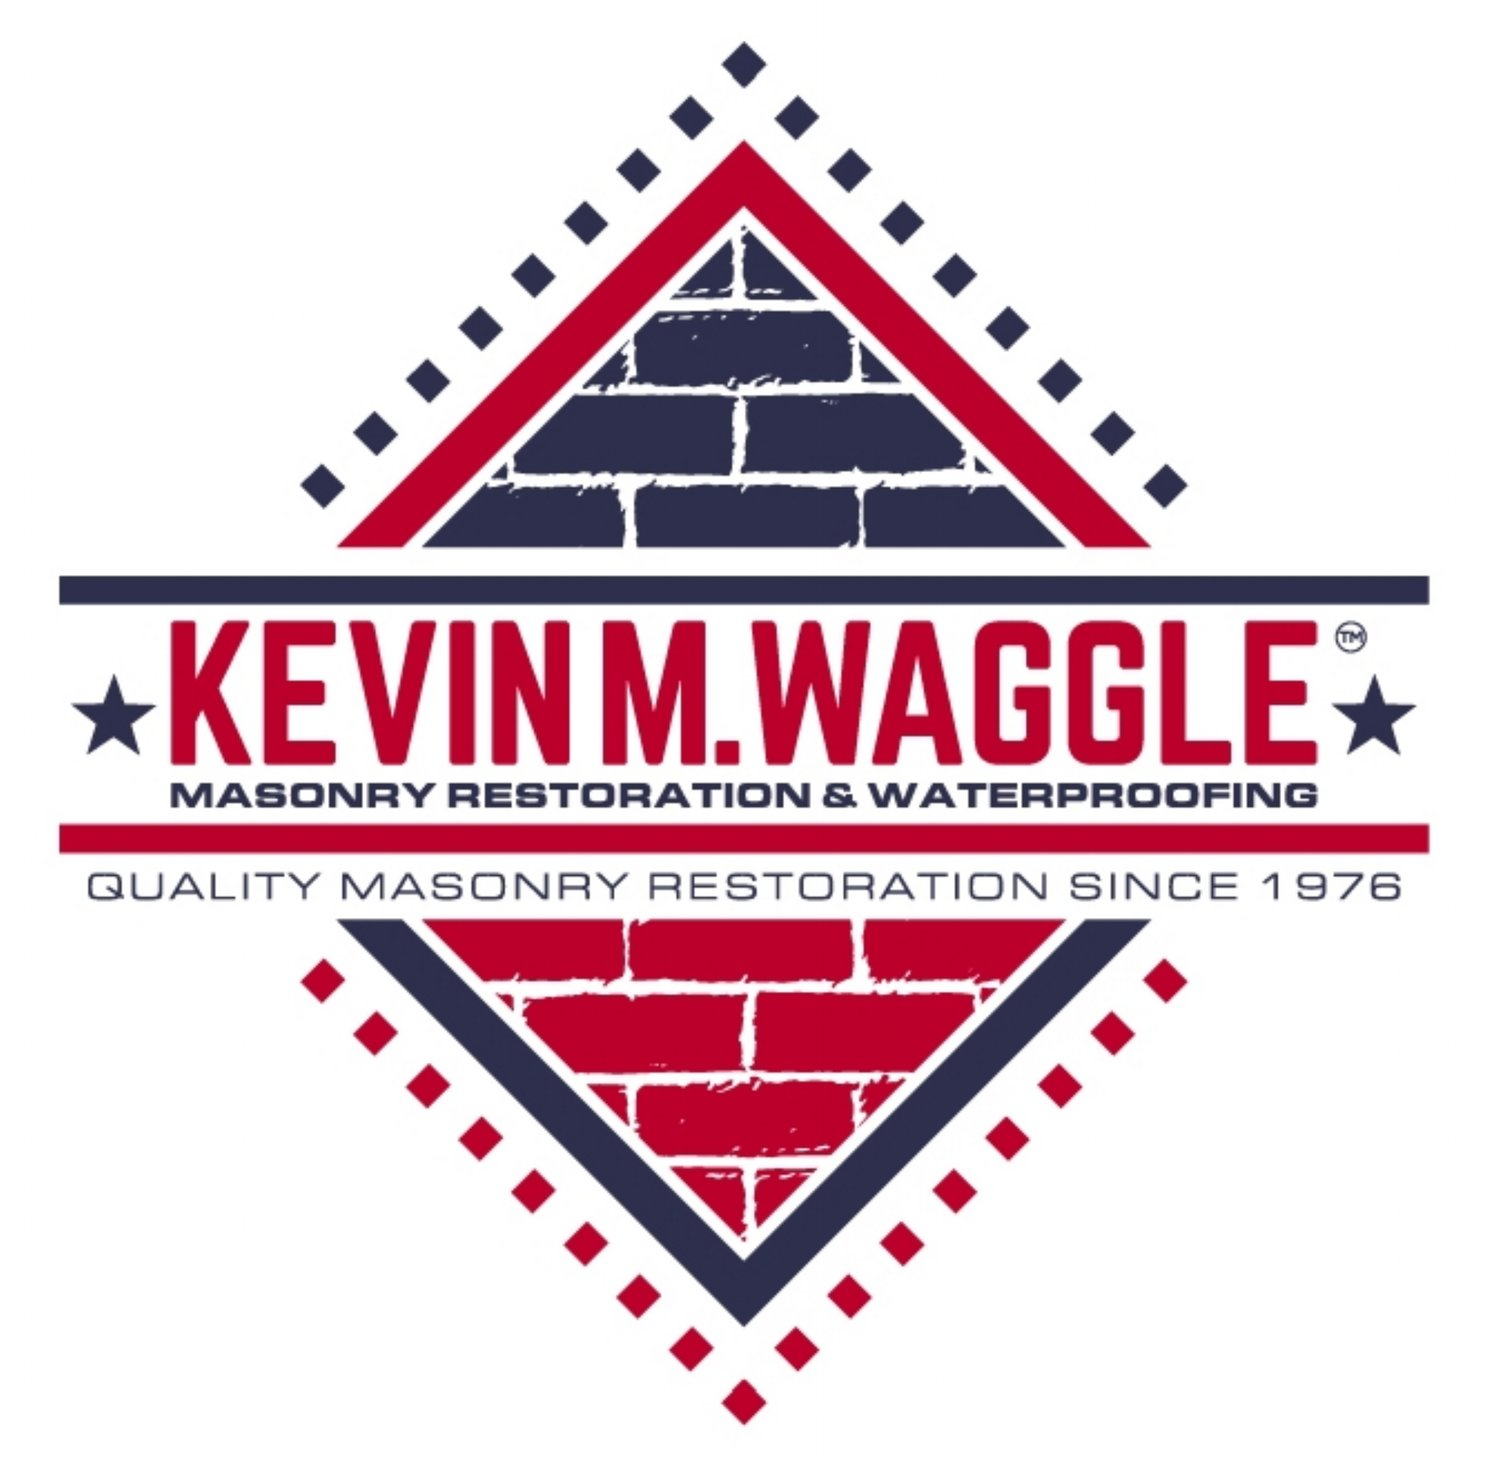 Quality Masonry Restoration Since 1976